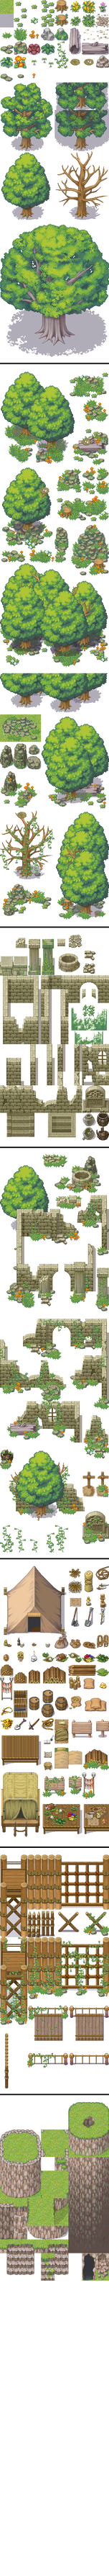 Tileset bosque expansion rtp - RPG Maker XP by Mataraelfay